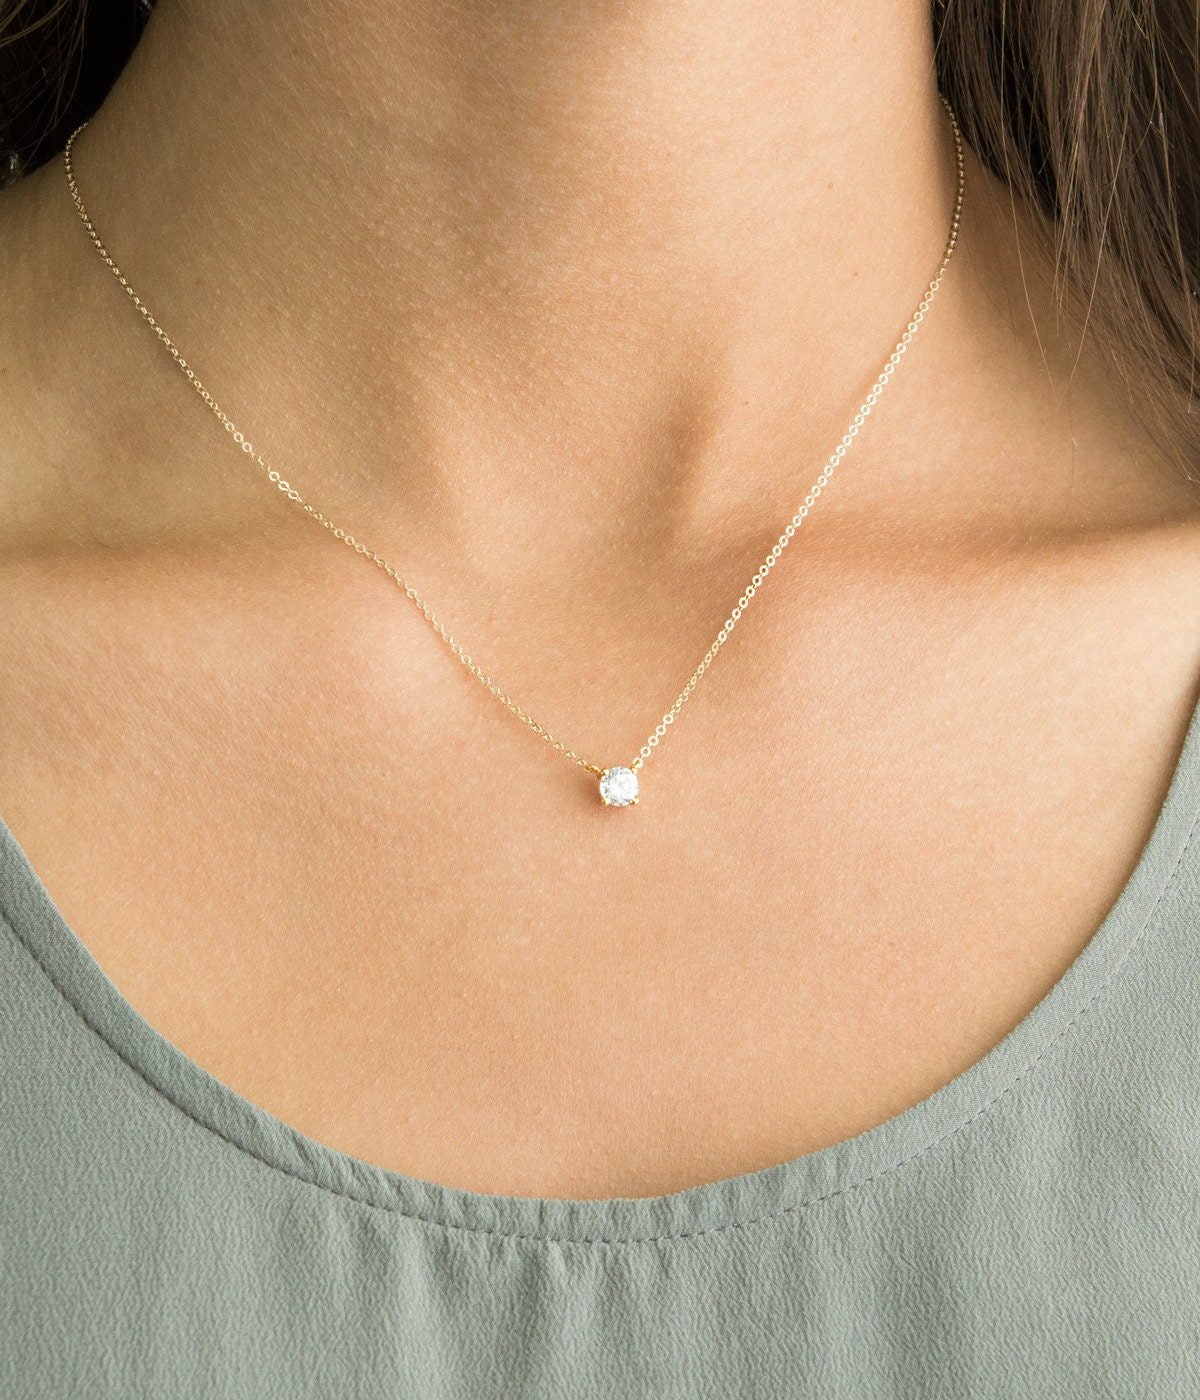 Diamond Pendant Necklace Gold Image Collections Home And